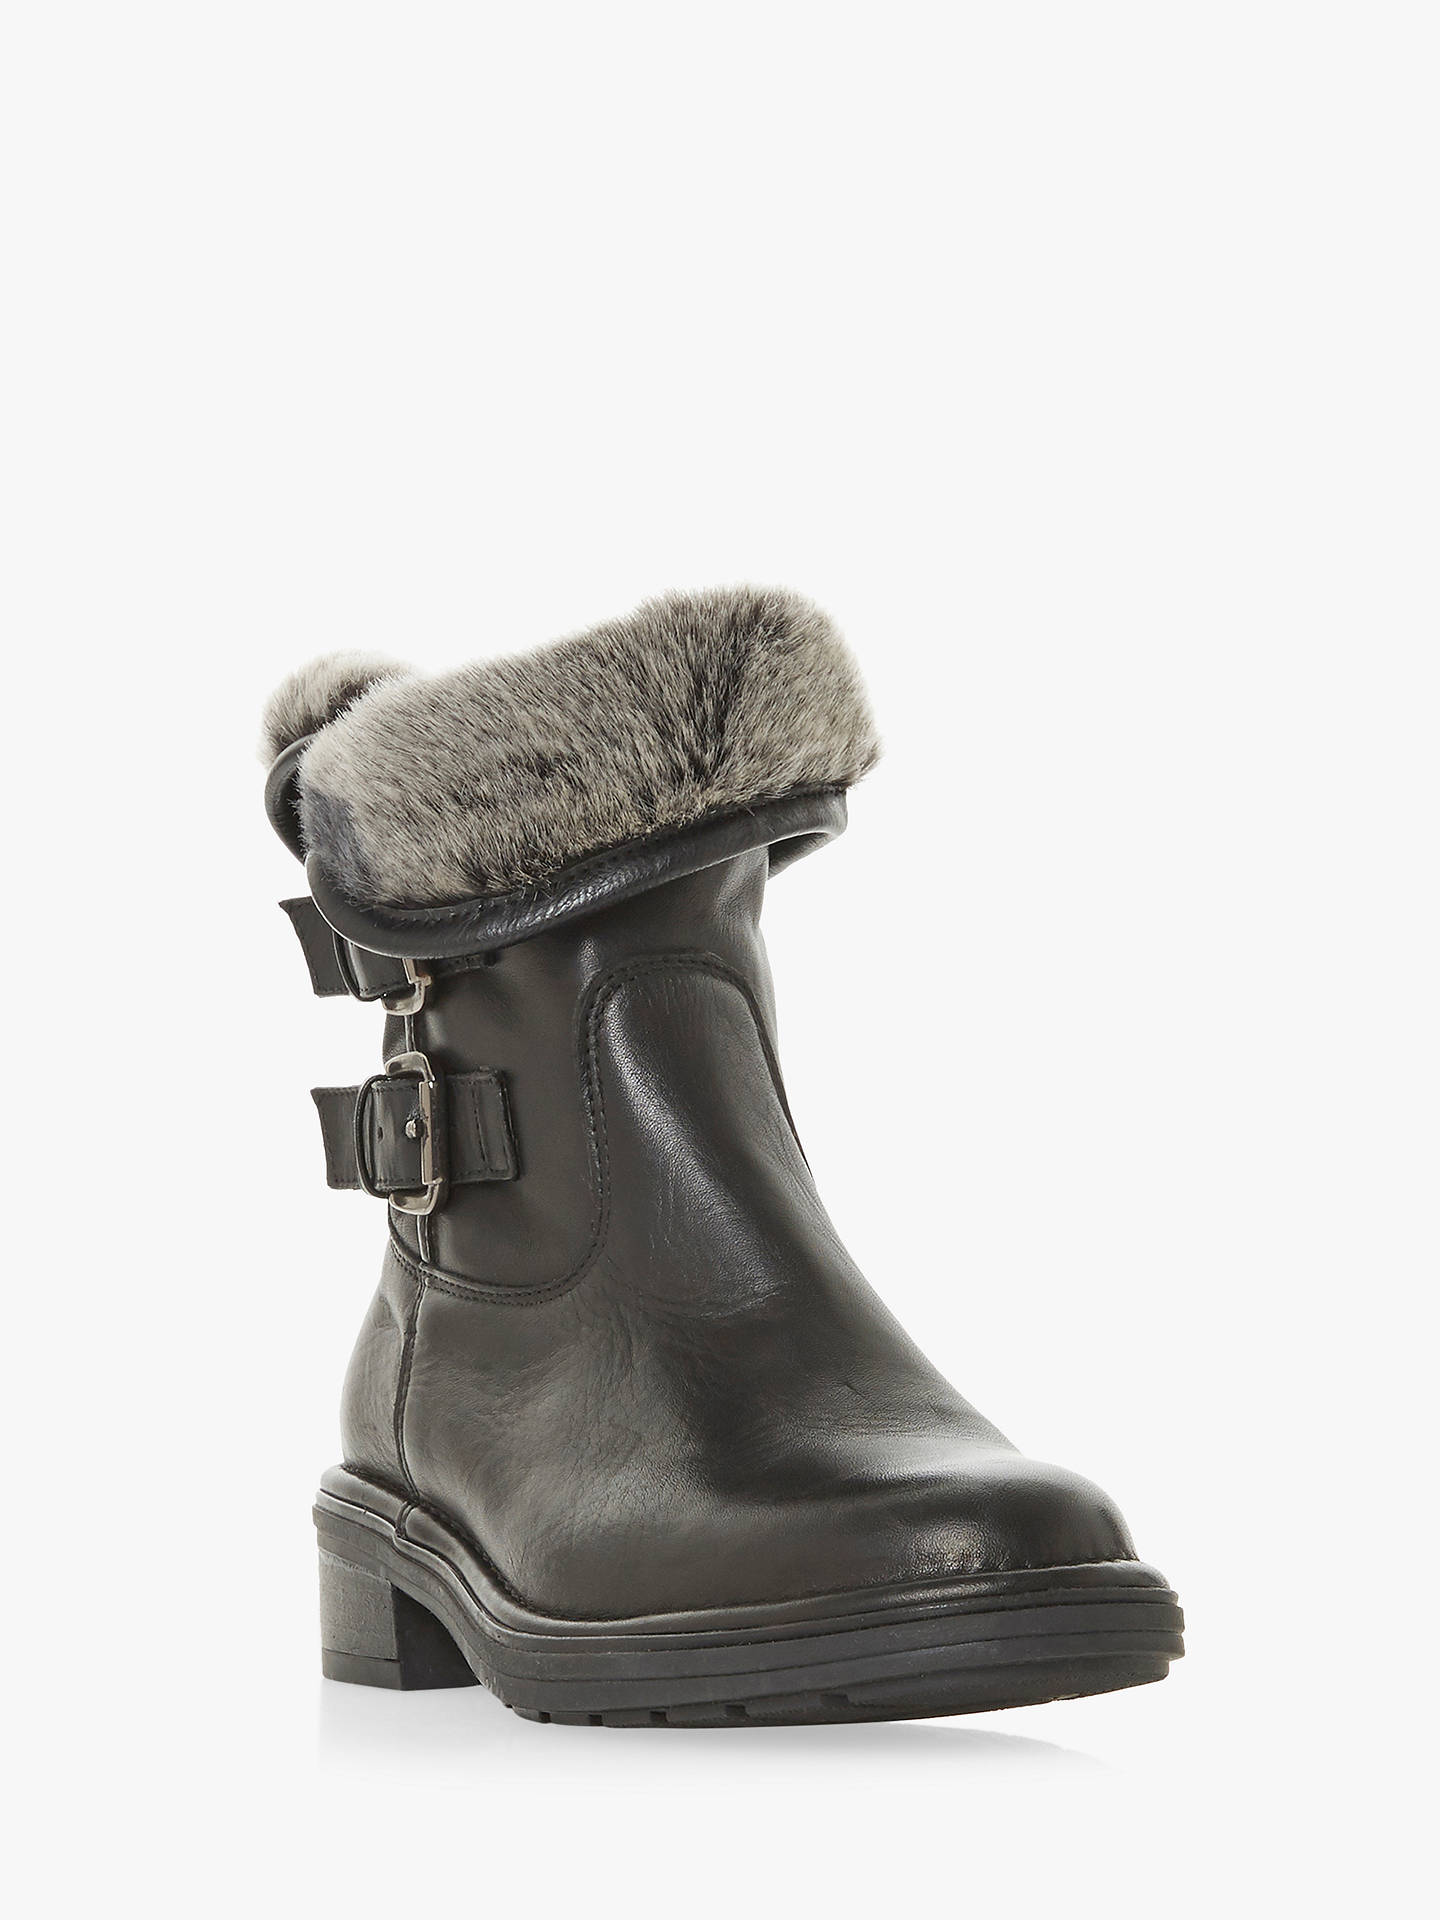 Buy Dune Rita Leather Warm Lined Calf Boots, Black, 8 Online at johnlewis.com